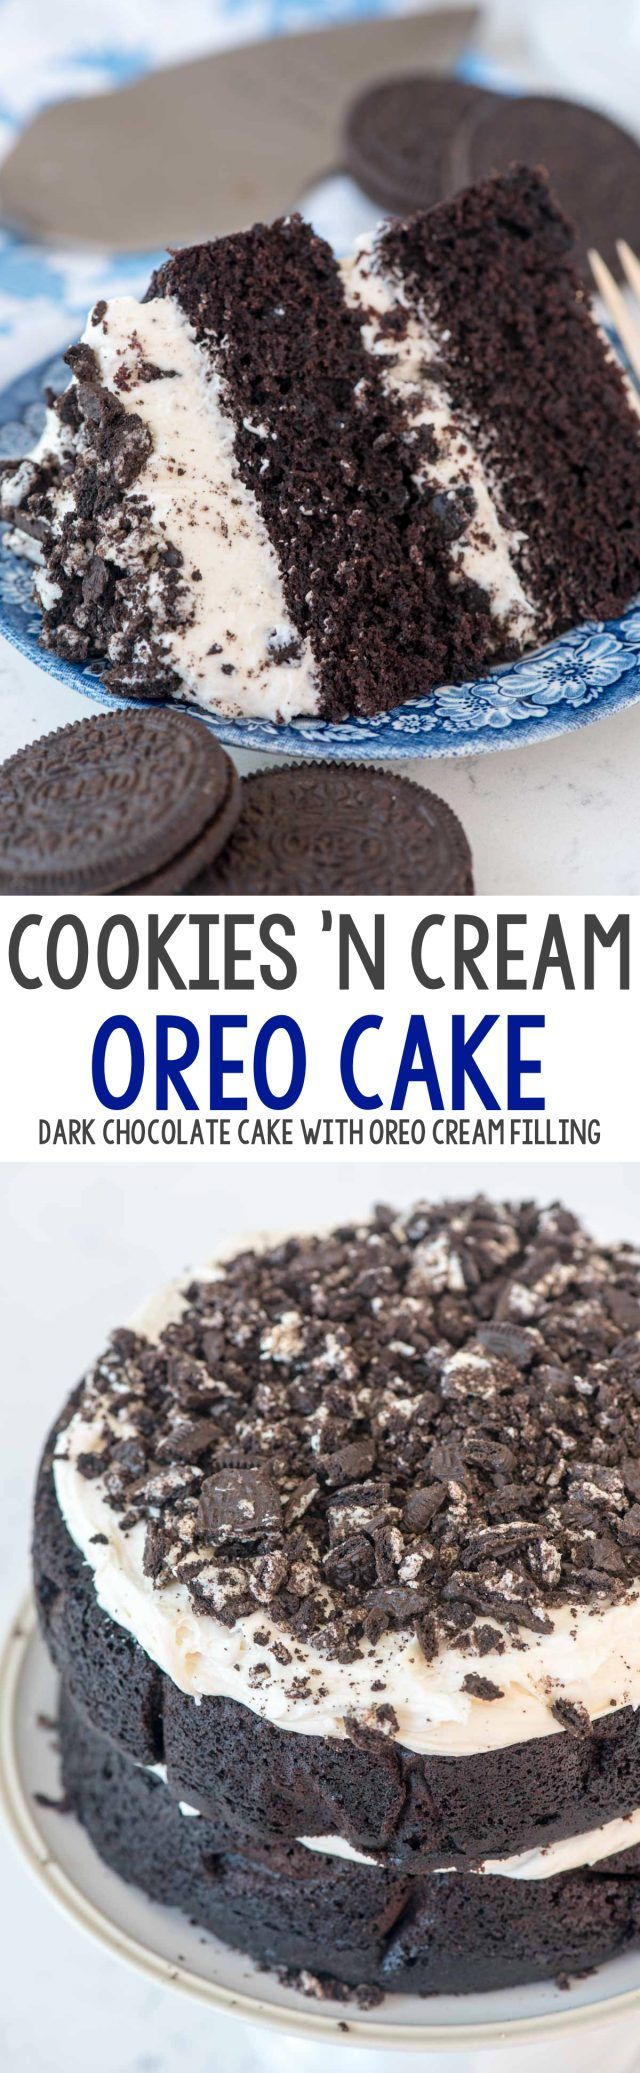 Extreme Cookies 'n Cream Cake - this cake tastes like an Oreo cookie! Dark chocolate cake layers sandwiched with a marshmallow buttercream frosting and lots of crushed Oreo cookies.